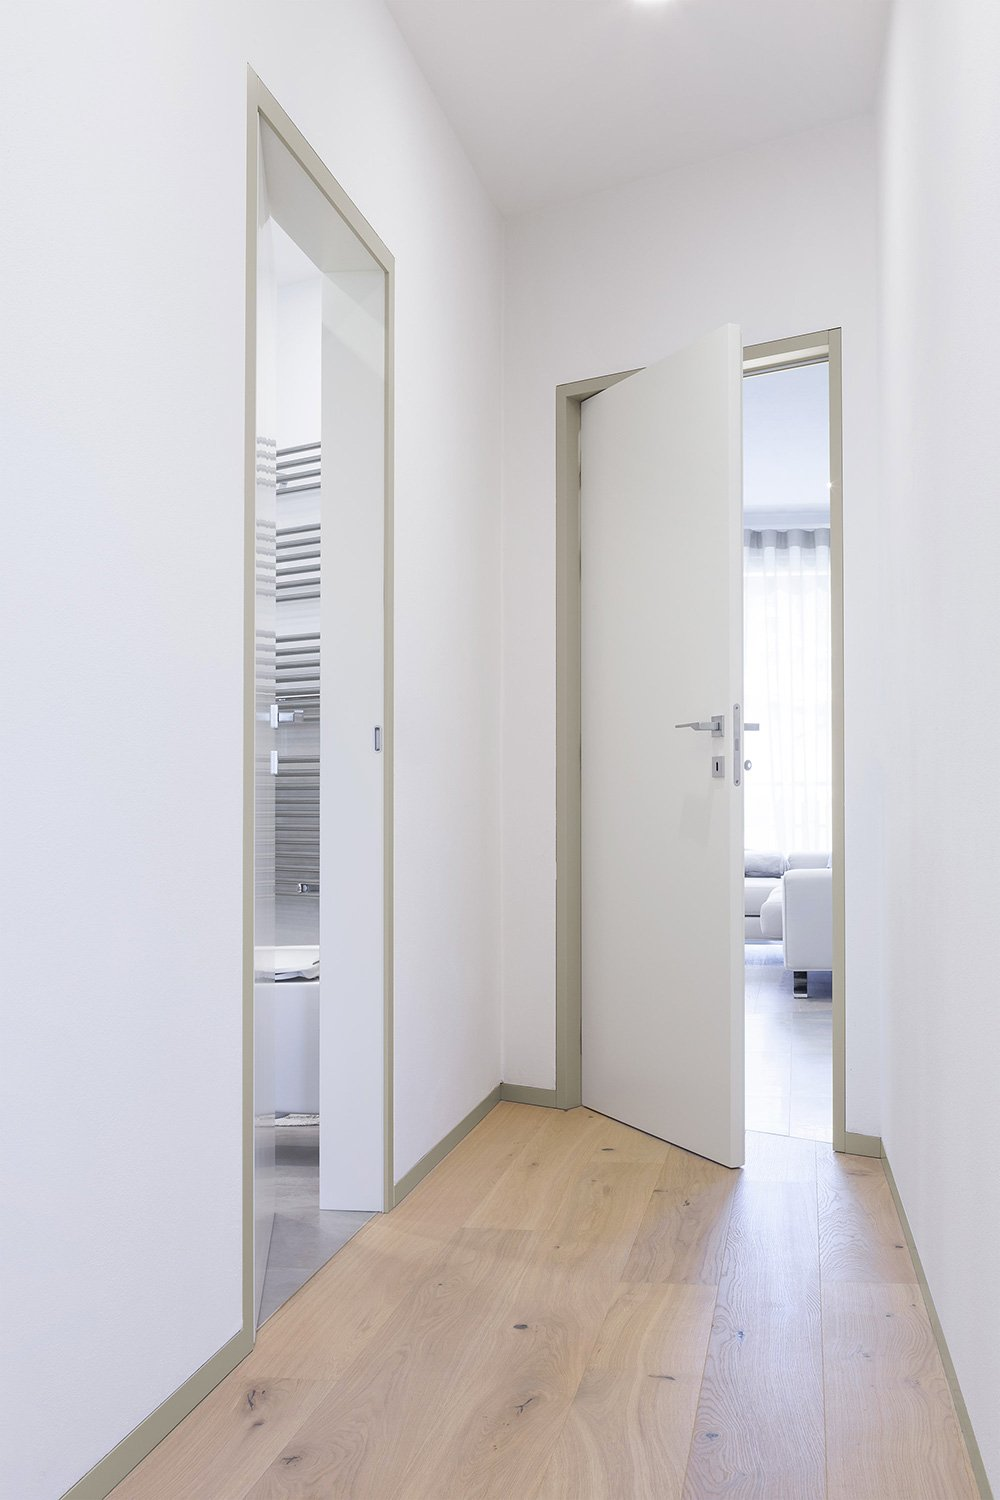 Porte come elementi d 39 arredo anche in contrasto con lo for Porte and integrati